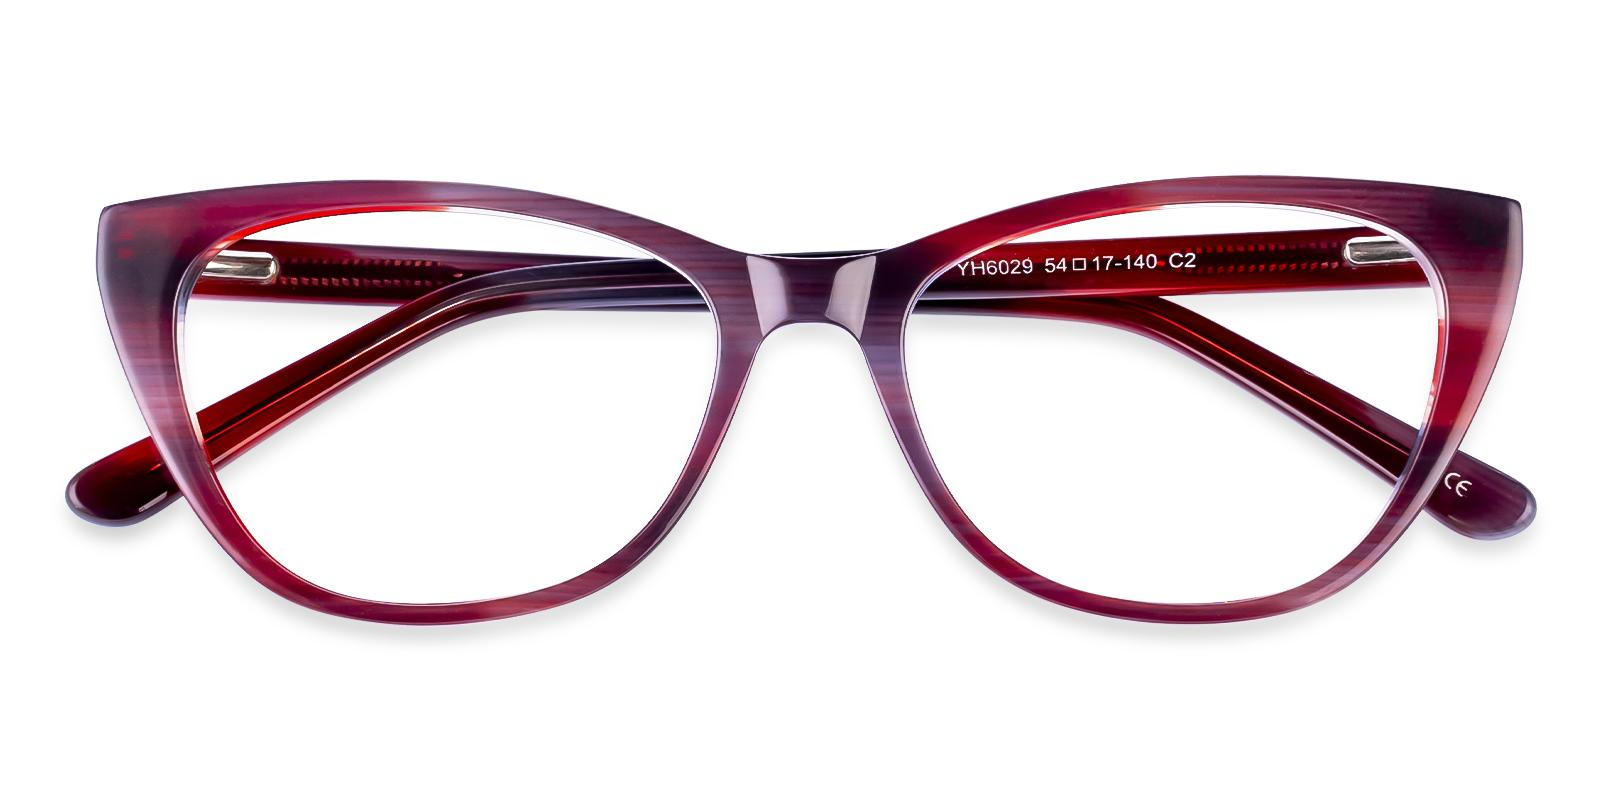 Tune Red Acetate Eyeglasses , SpringHinges , UniversalBridgeFit Frames from ABBE Glasses